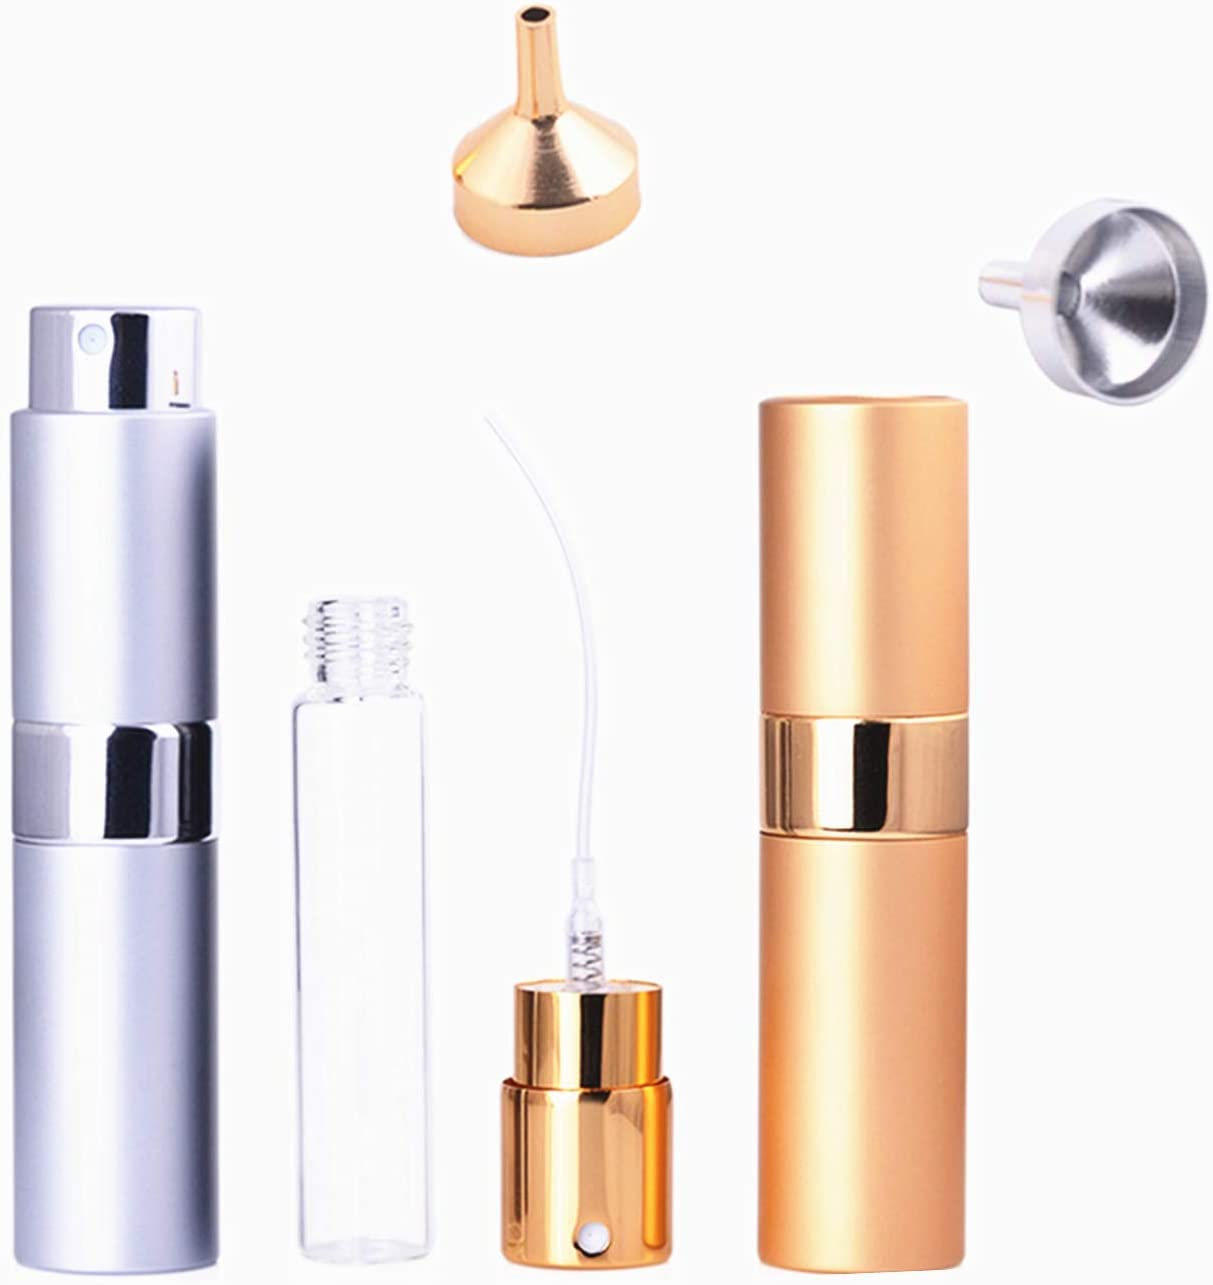 2 Pack 15ml Atomizers Bar Mister with Refillable Canister and 2 Pcs Funnel for Vermouth Spray, Glass Canister with Portable Rotating Aluminum Case,Sprayer Refillable Containers - Gold/Silver